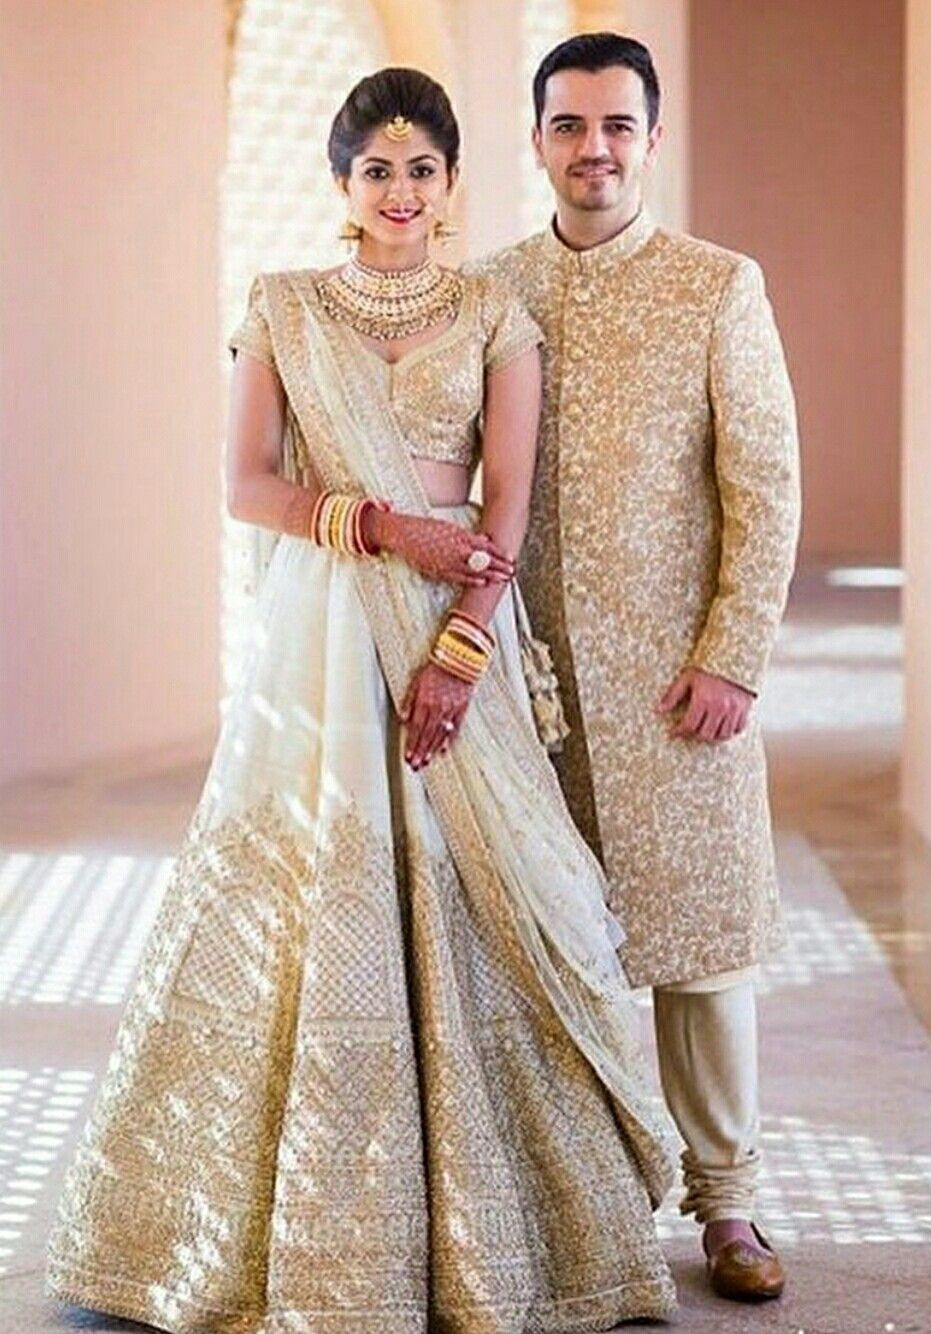 Matching offwhite outfit for bride and groom in 2019